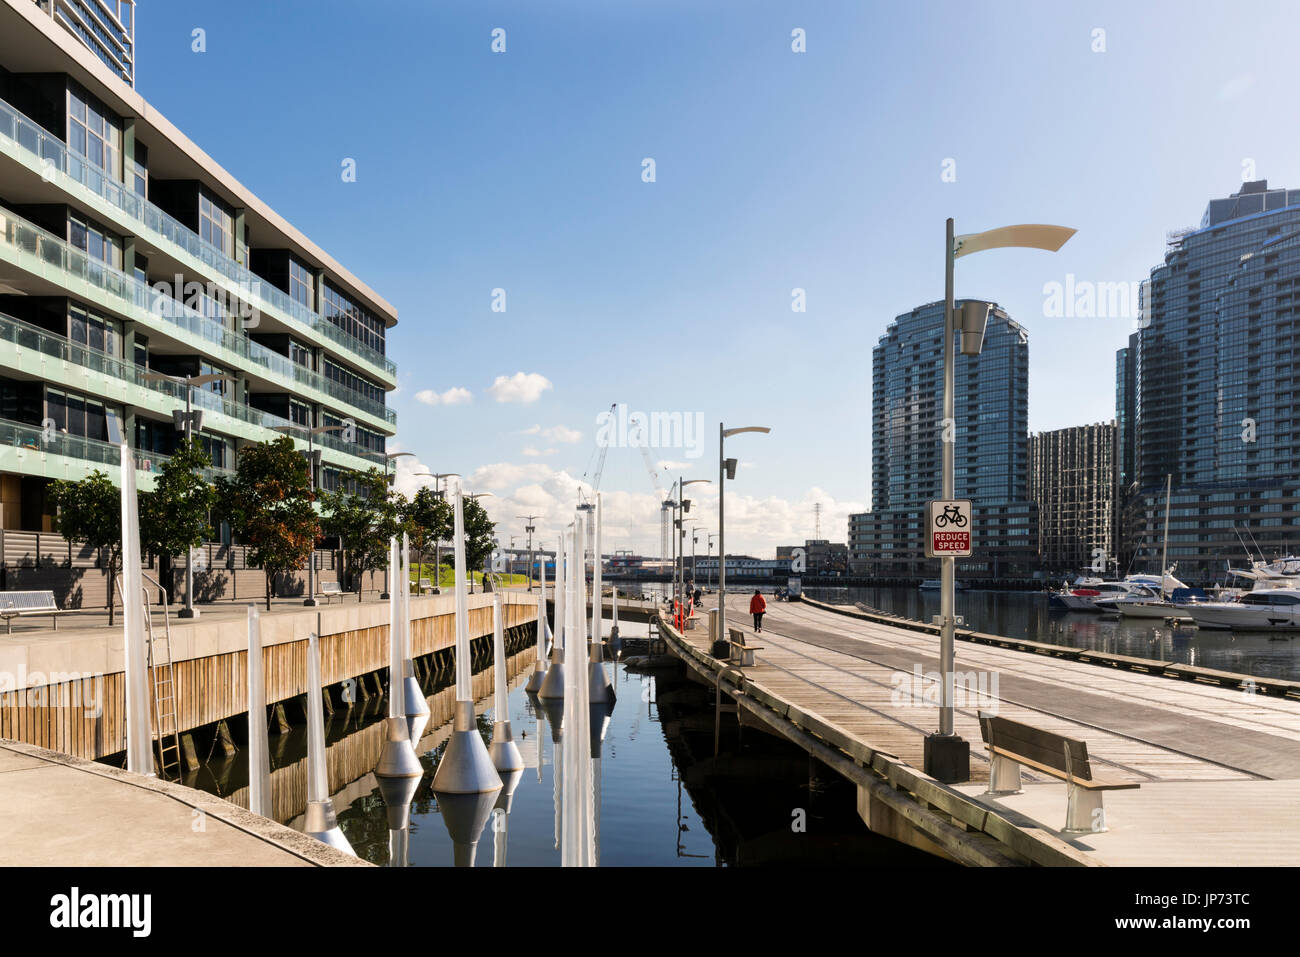 Docklands, Melbourne, Victoria, Australia. Waterfront buildings and marina, water and glass sparkling in sunshine. - Stock Image